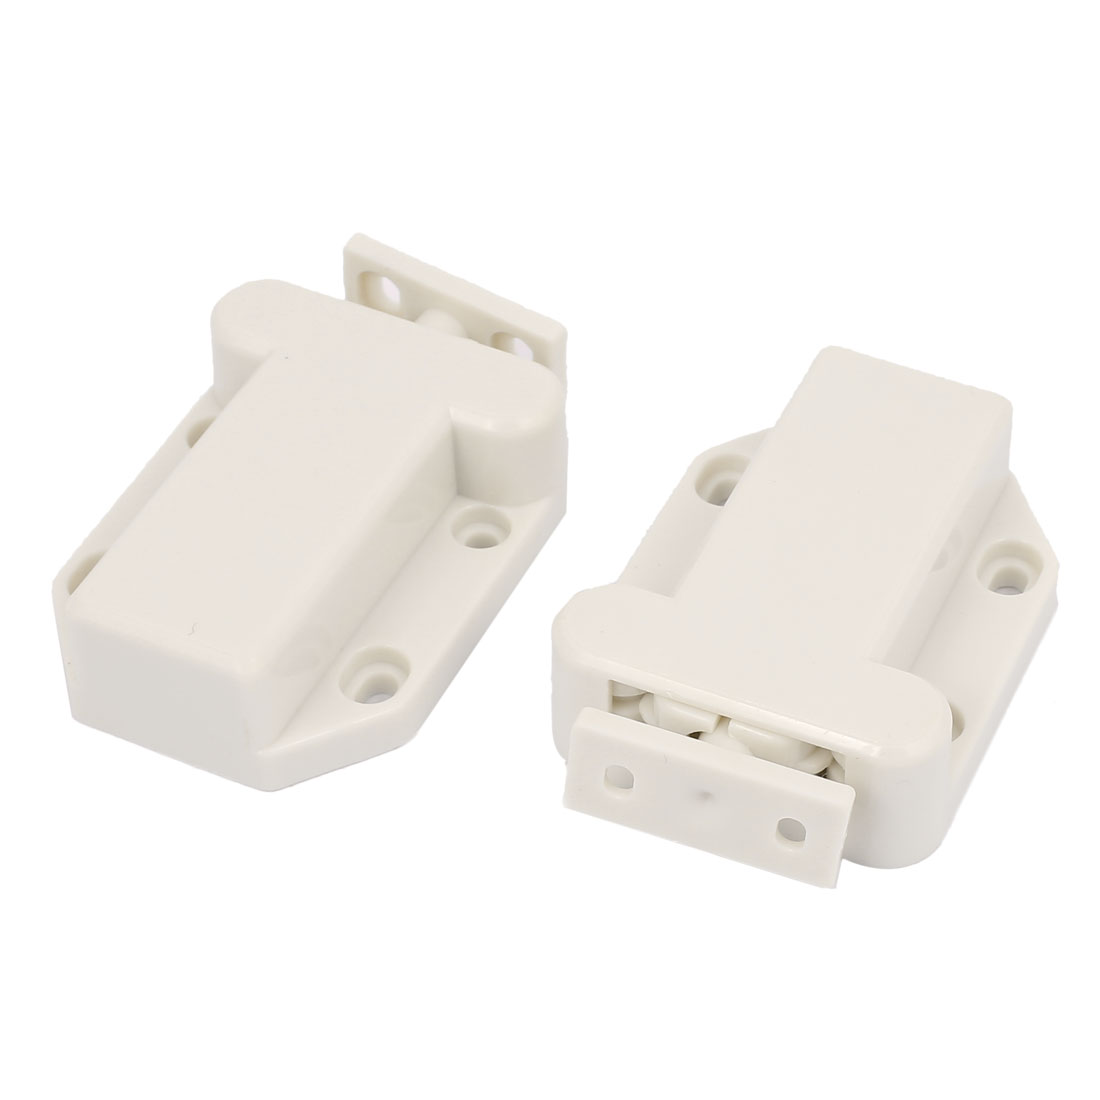 Cabinet Door Non-Magnetic Touch Latch Push Catch White 2PCS